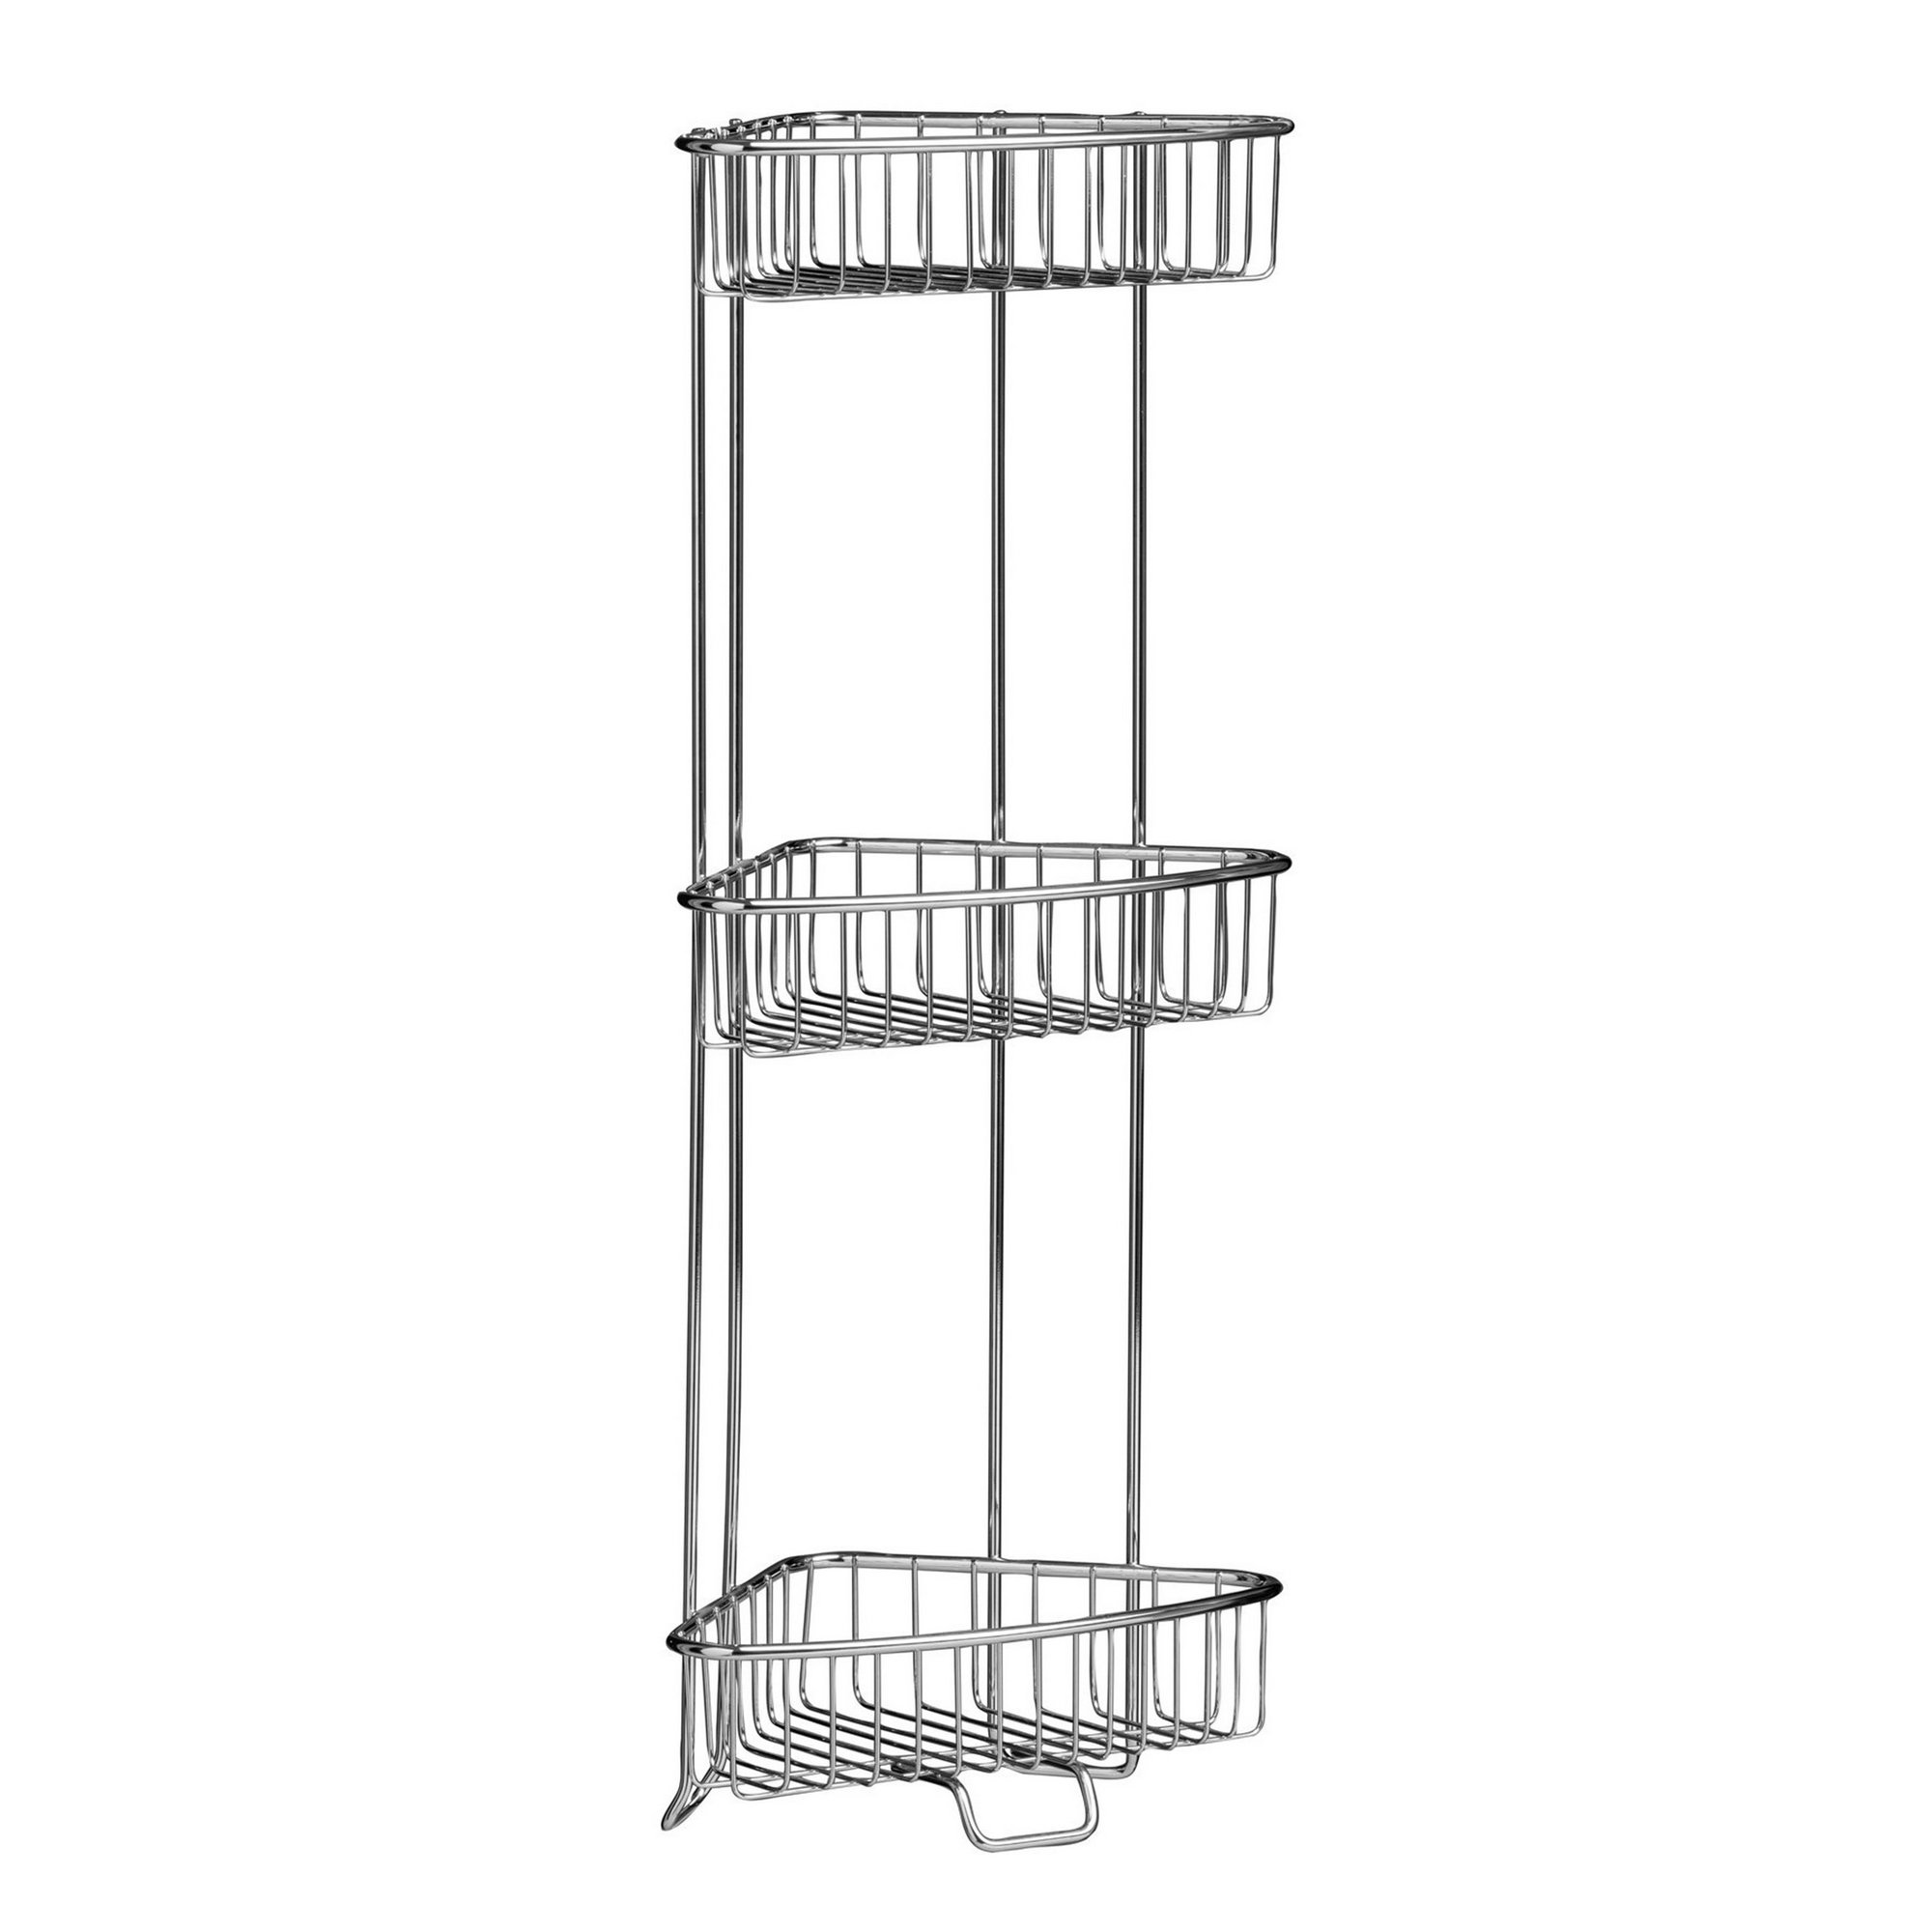 Image of 3 Tier Corner Storage Caddy